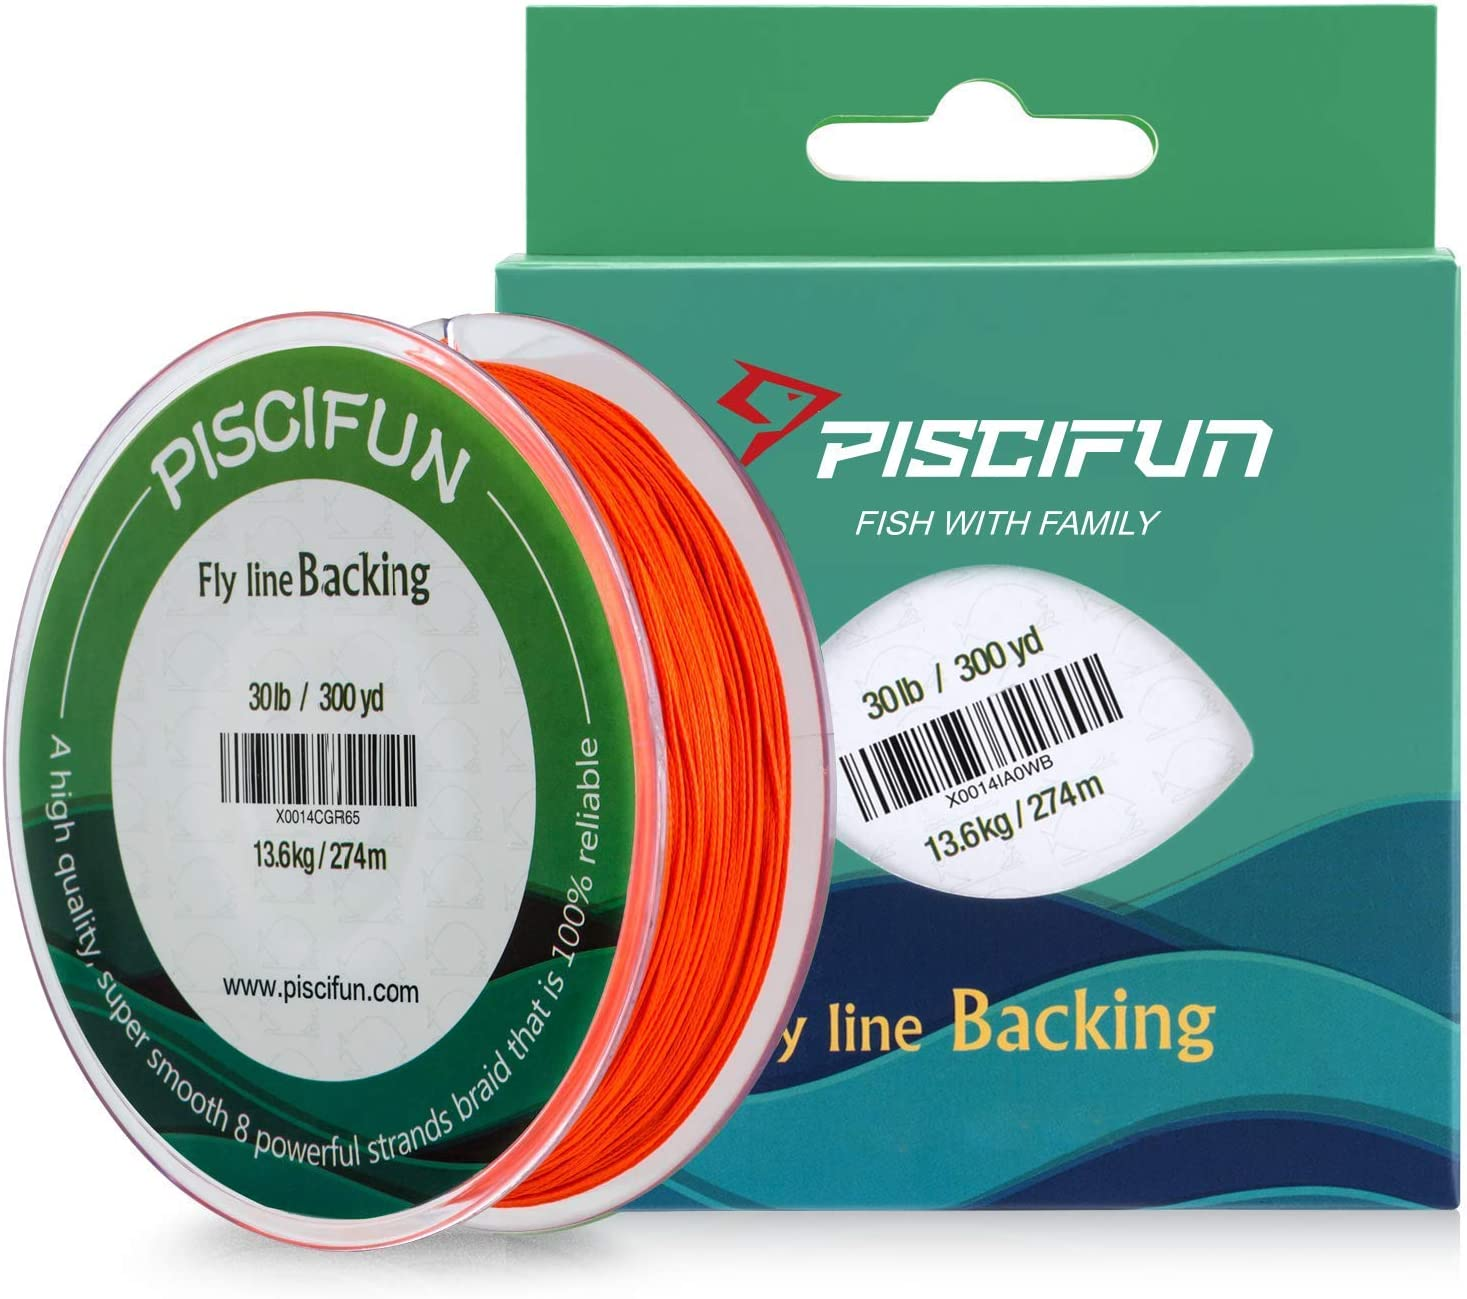 Piscifun Braided Fly Line Backing White Fluorescent Regular discount Orange with 35% OFF